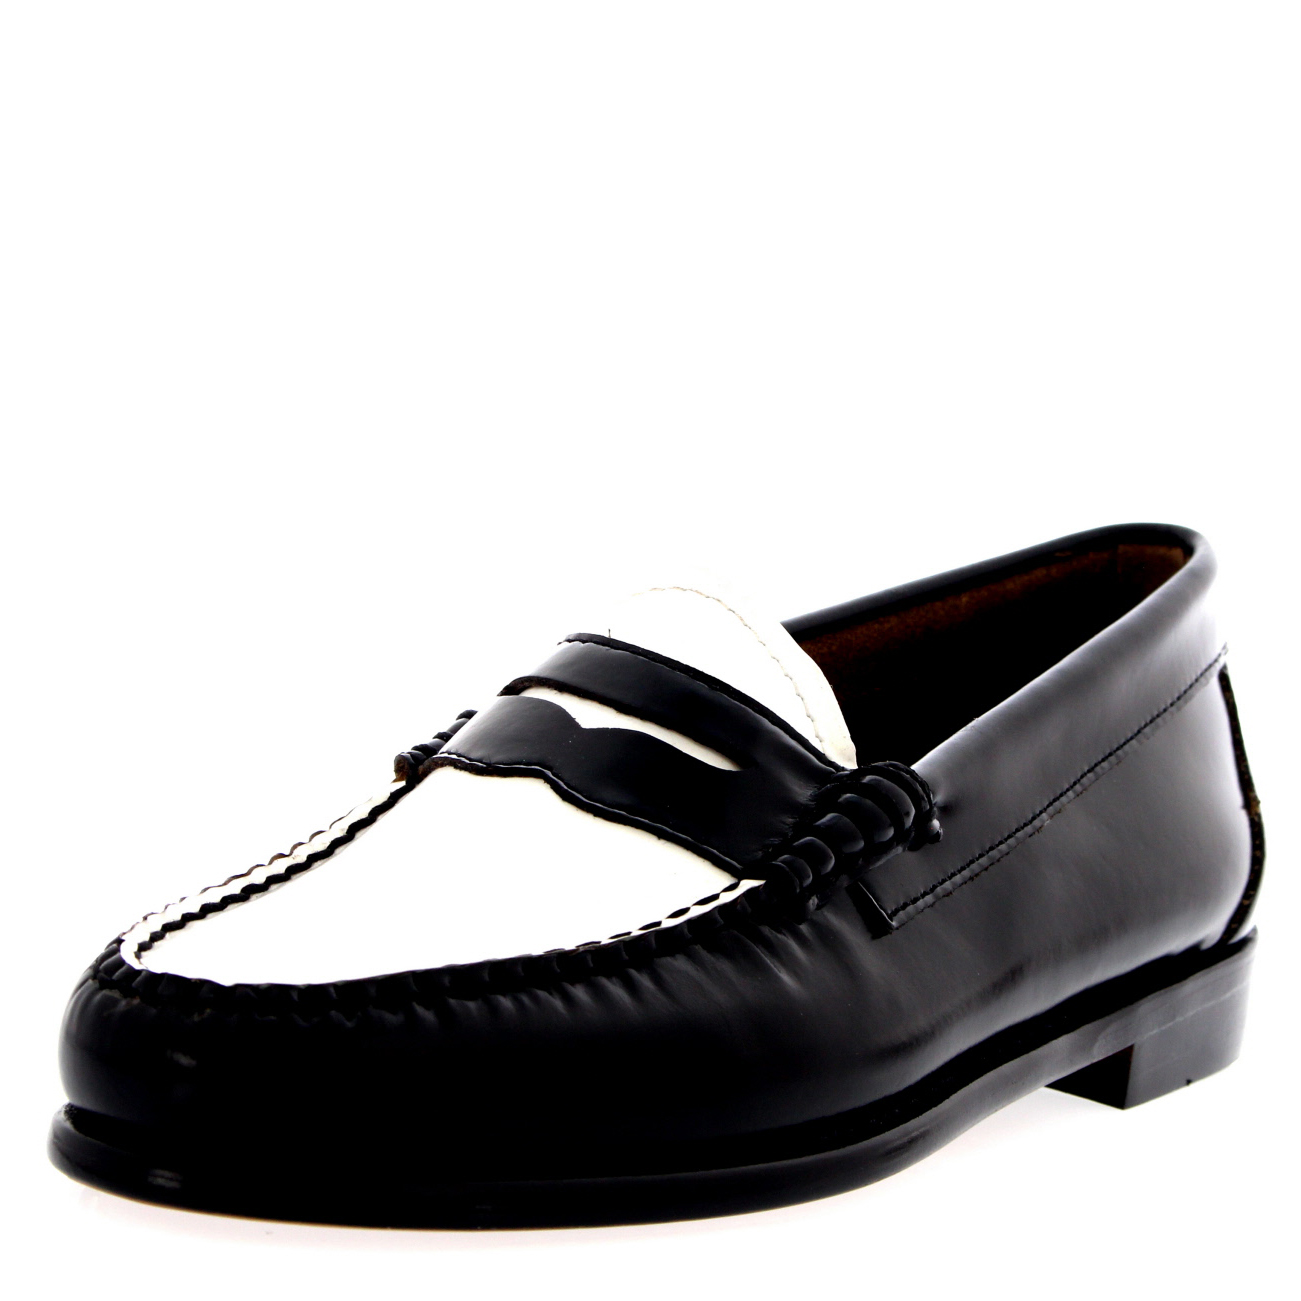 Ladies G H Bass Weejuns Penny Smart Loafers Formal Slip On